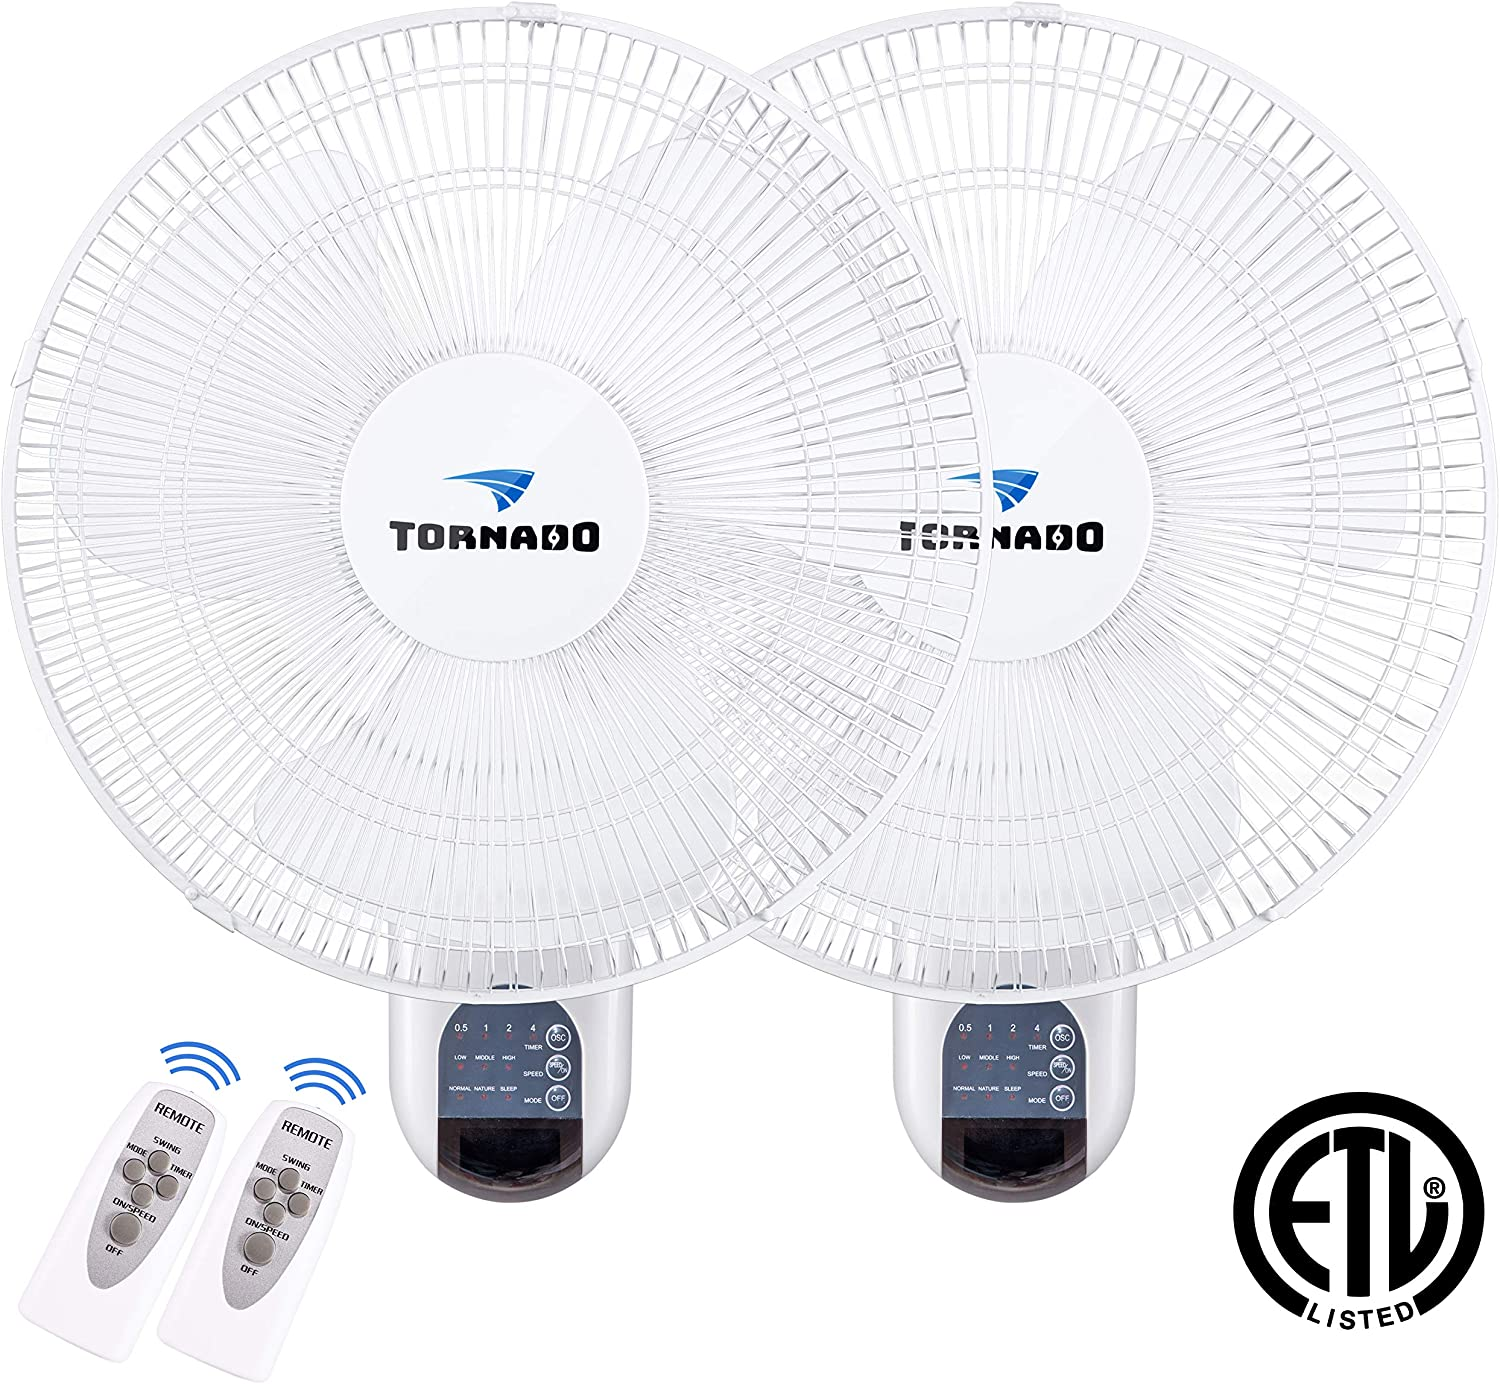 2 Pack - Tornado 16 Inch Digital Wall Mount Fan - Remote Control Included - 3 Speed Settings - 3 Oscillating Settings - 65 Inches Power Cord - Etl Safety Listed